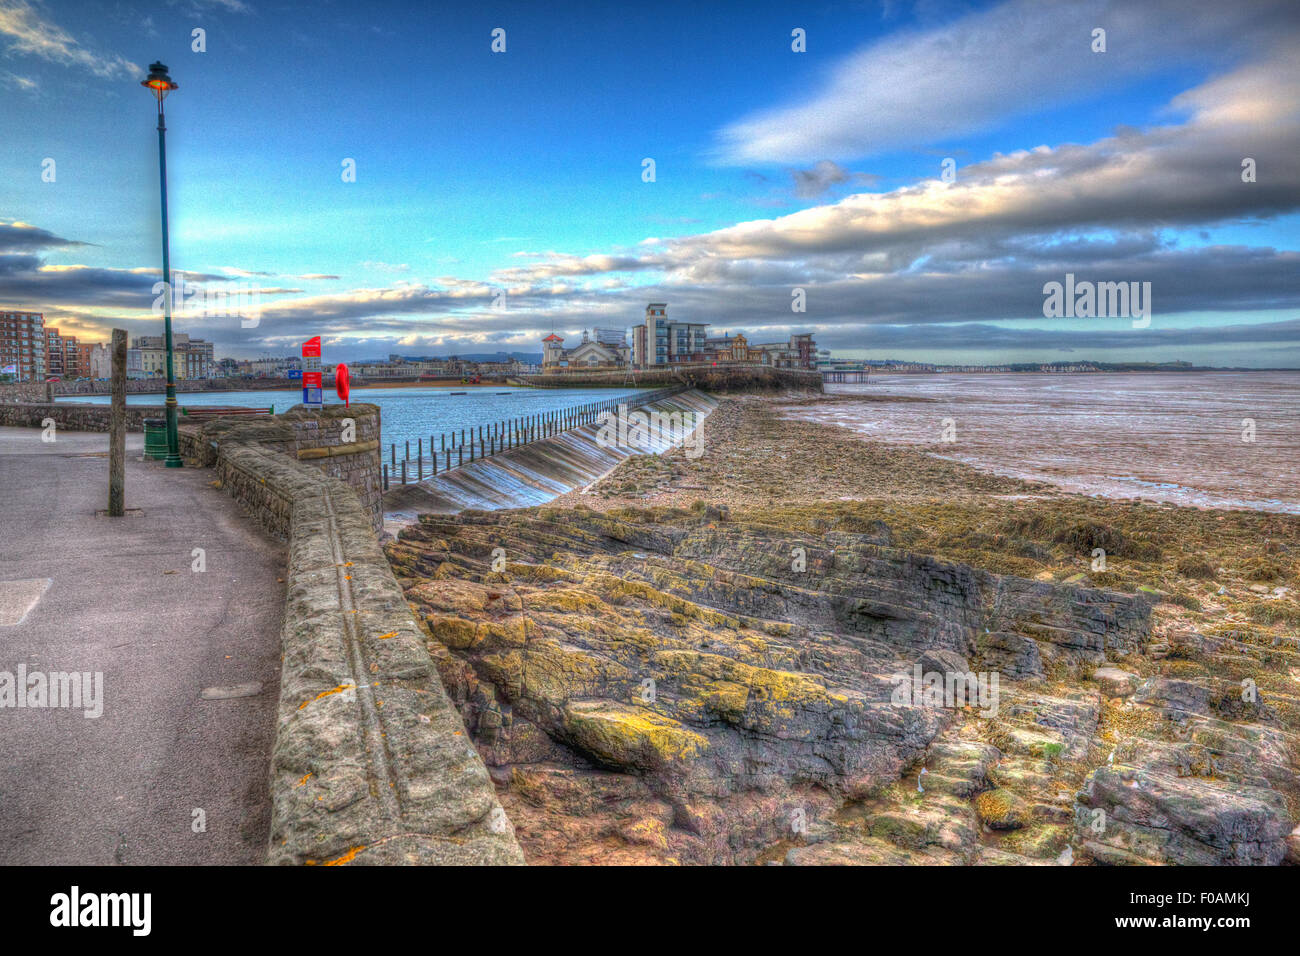 Knightstone island and Marine Lake Weston-super-Mare Somerset England uk early morning in HDR - Stock Image